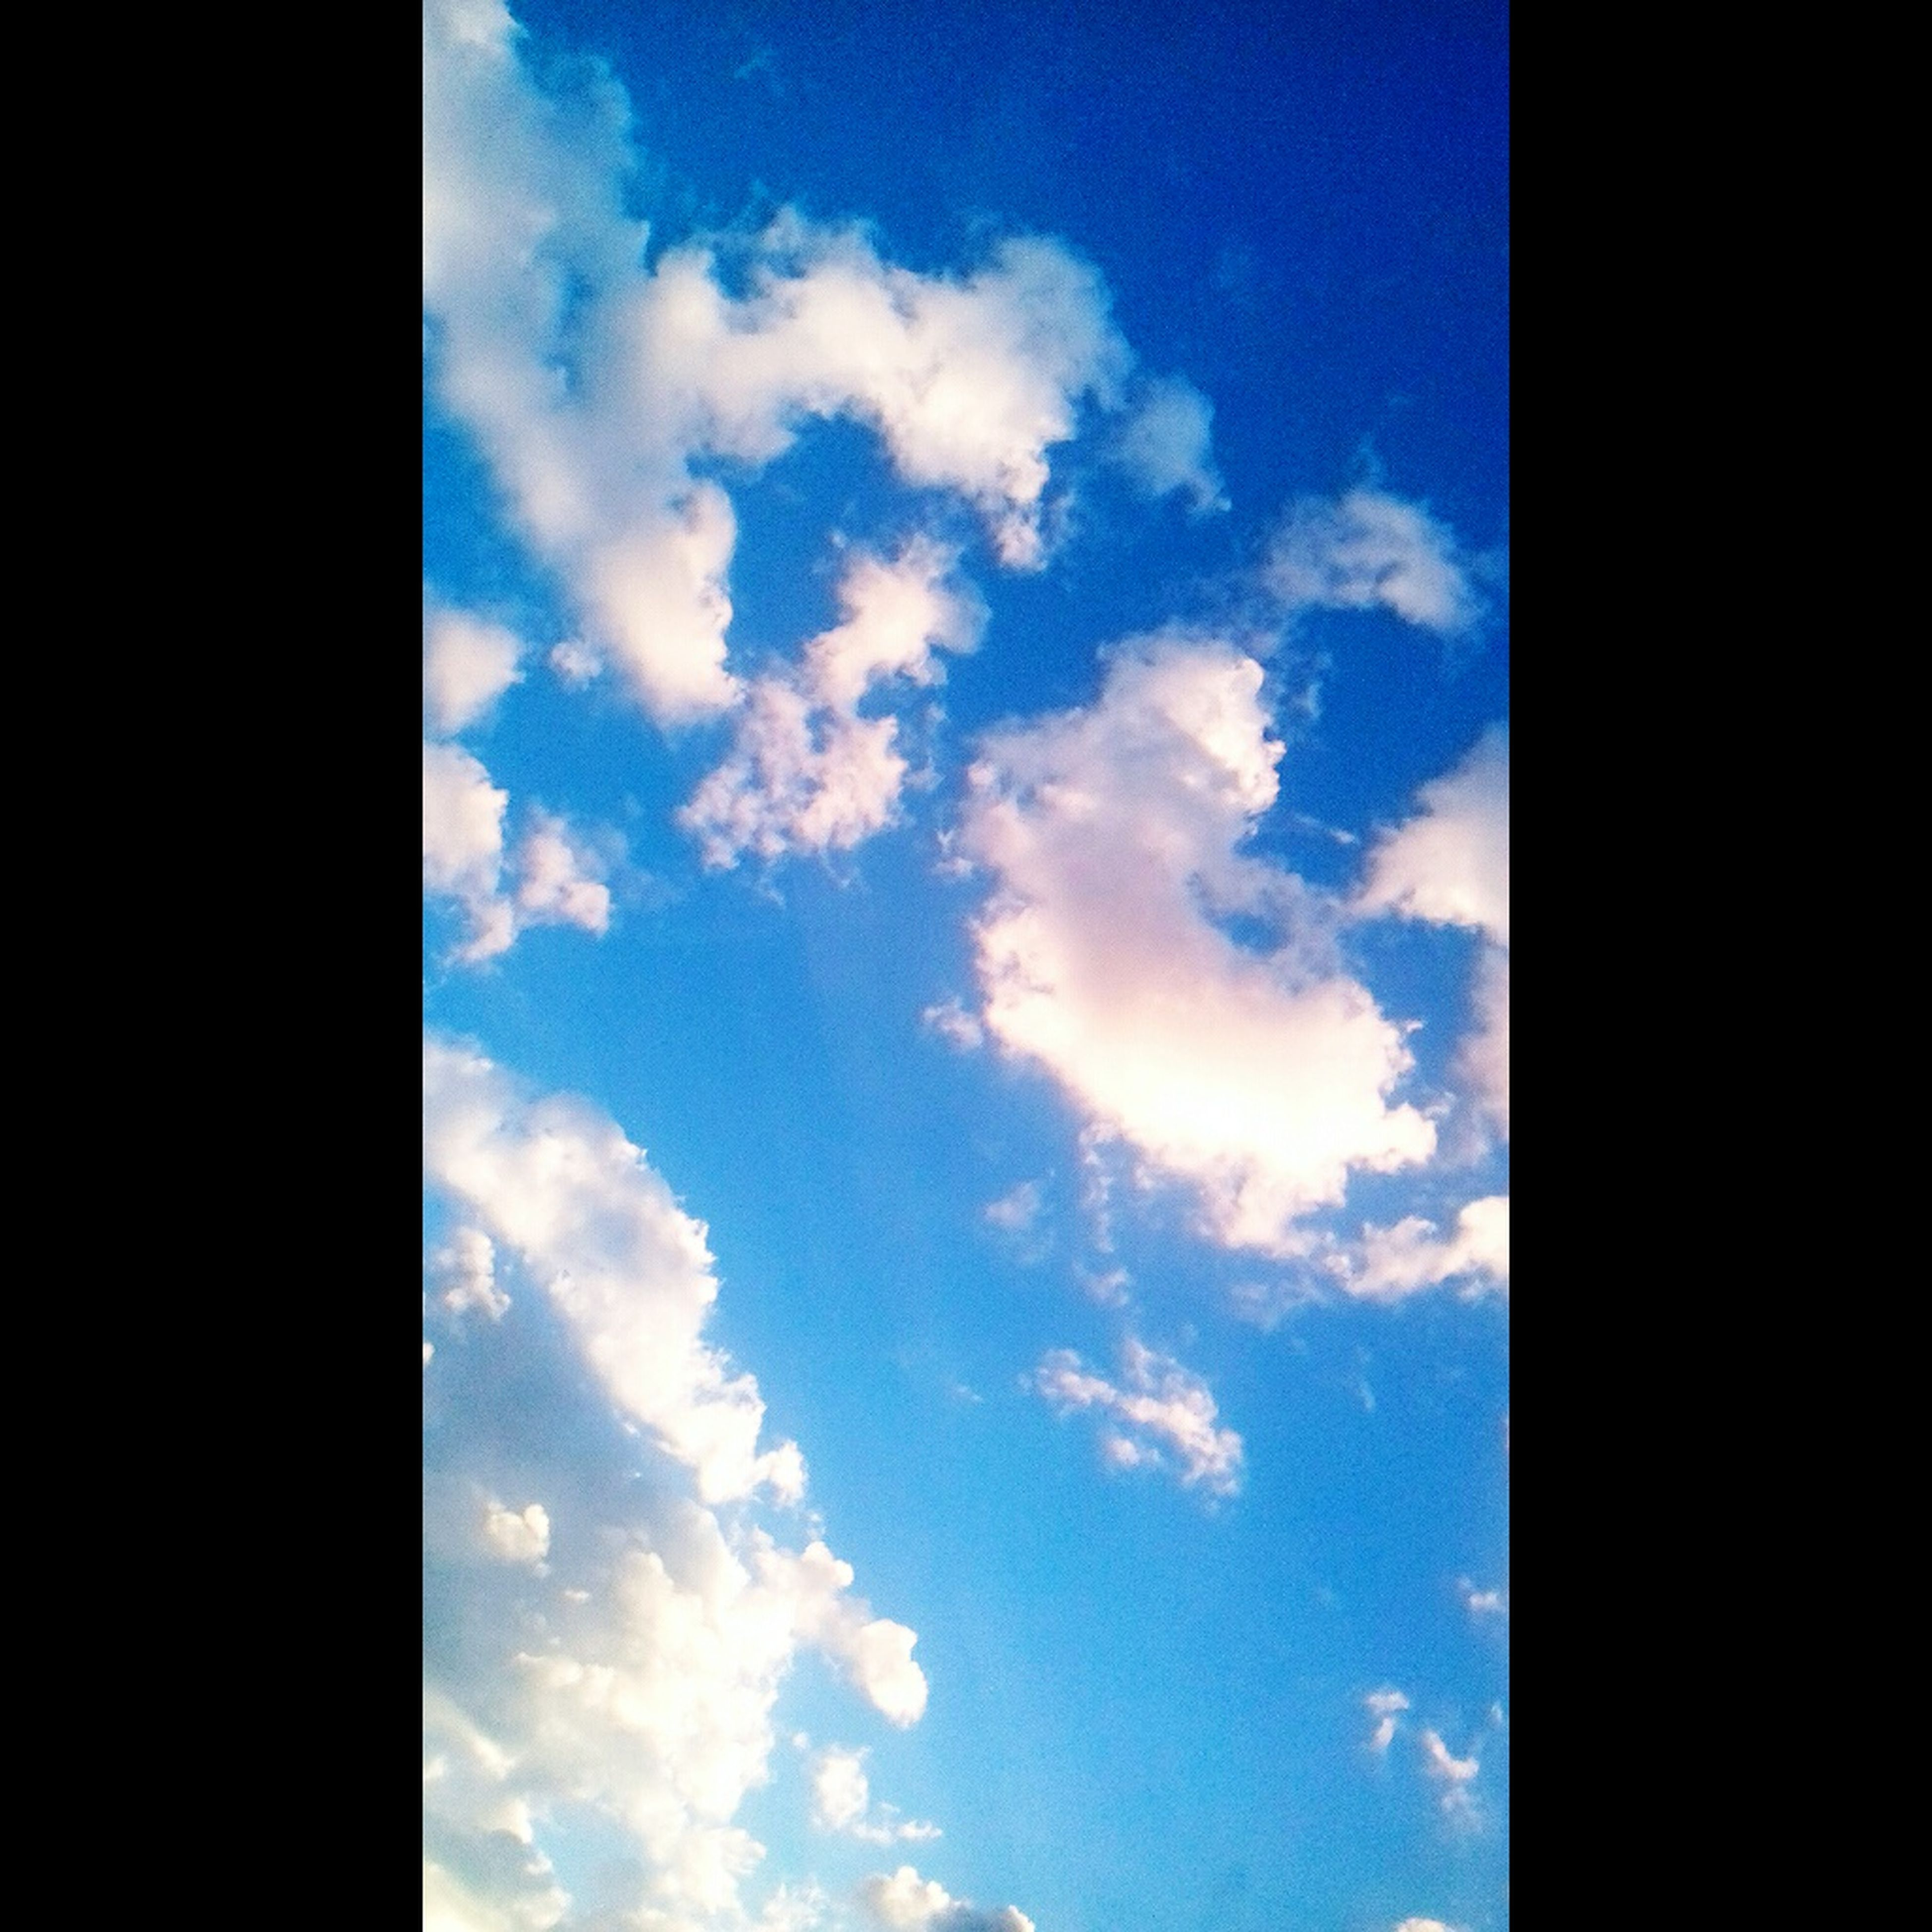 sky, cloud - sky, low angle view, no people, day, blue, nature, beauty in nature, backgrounds, outdoors